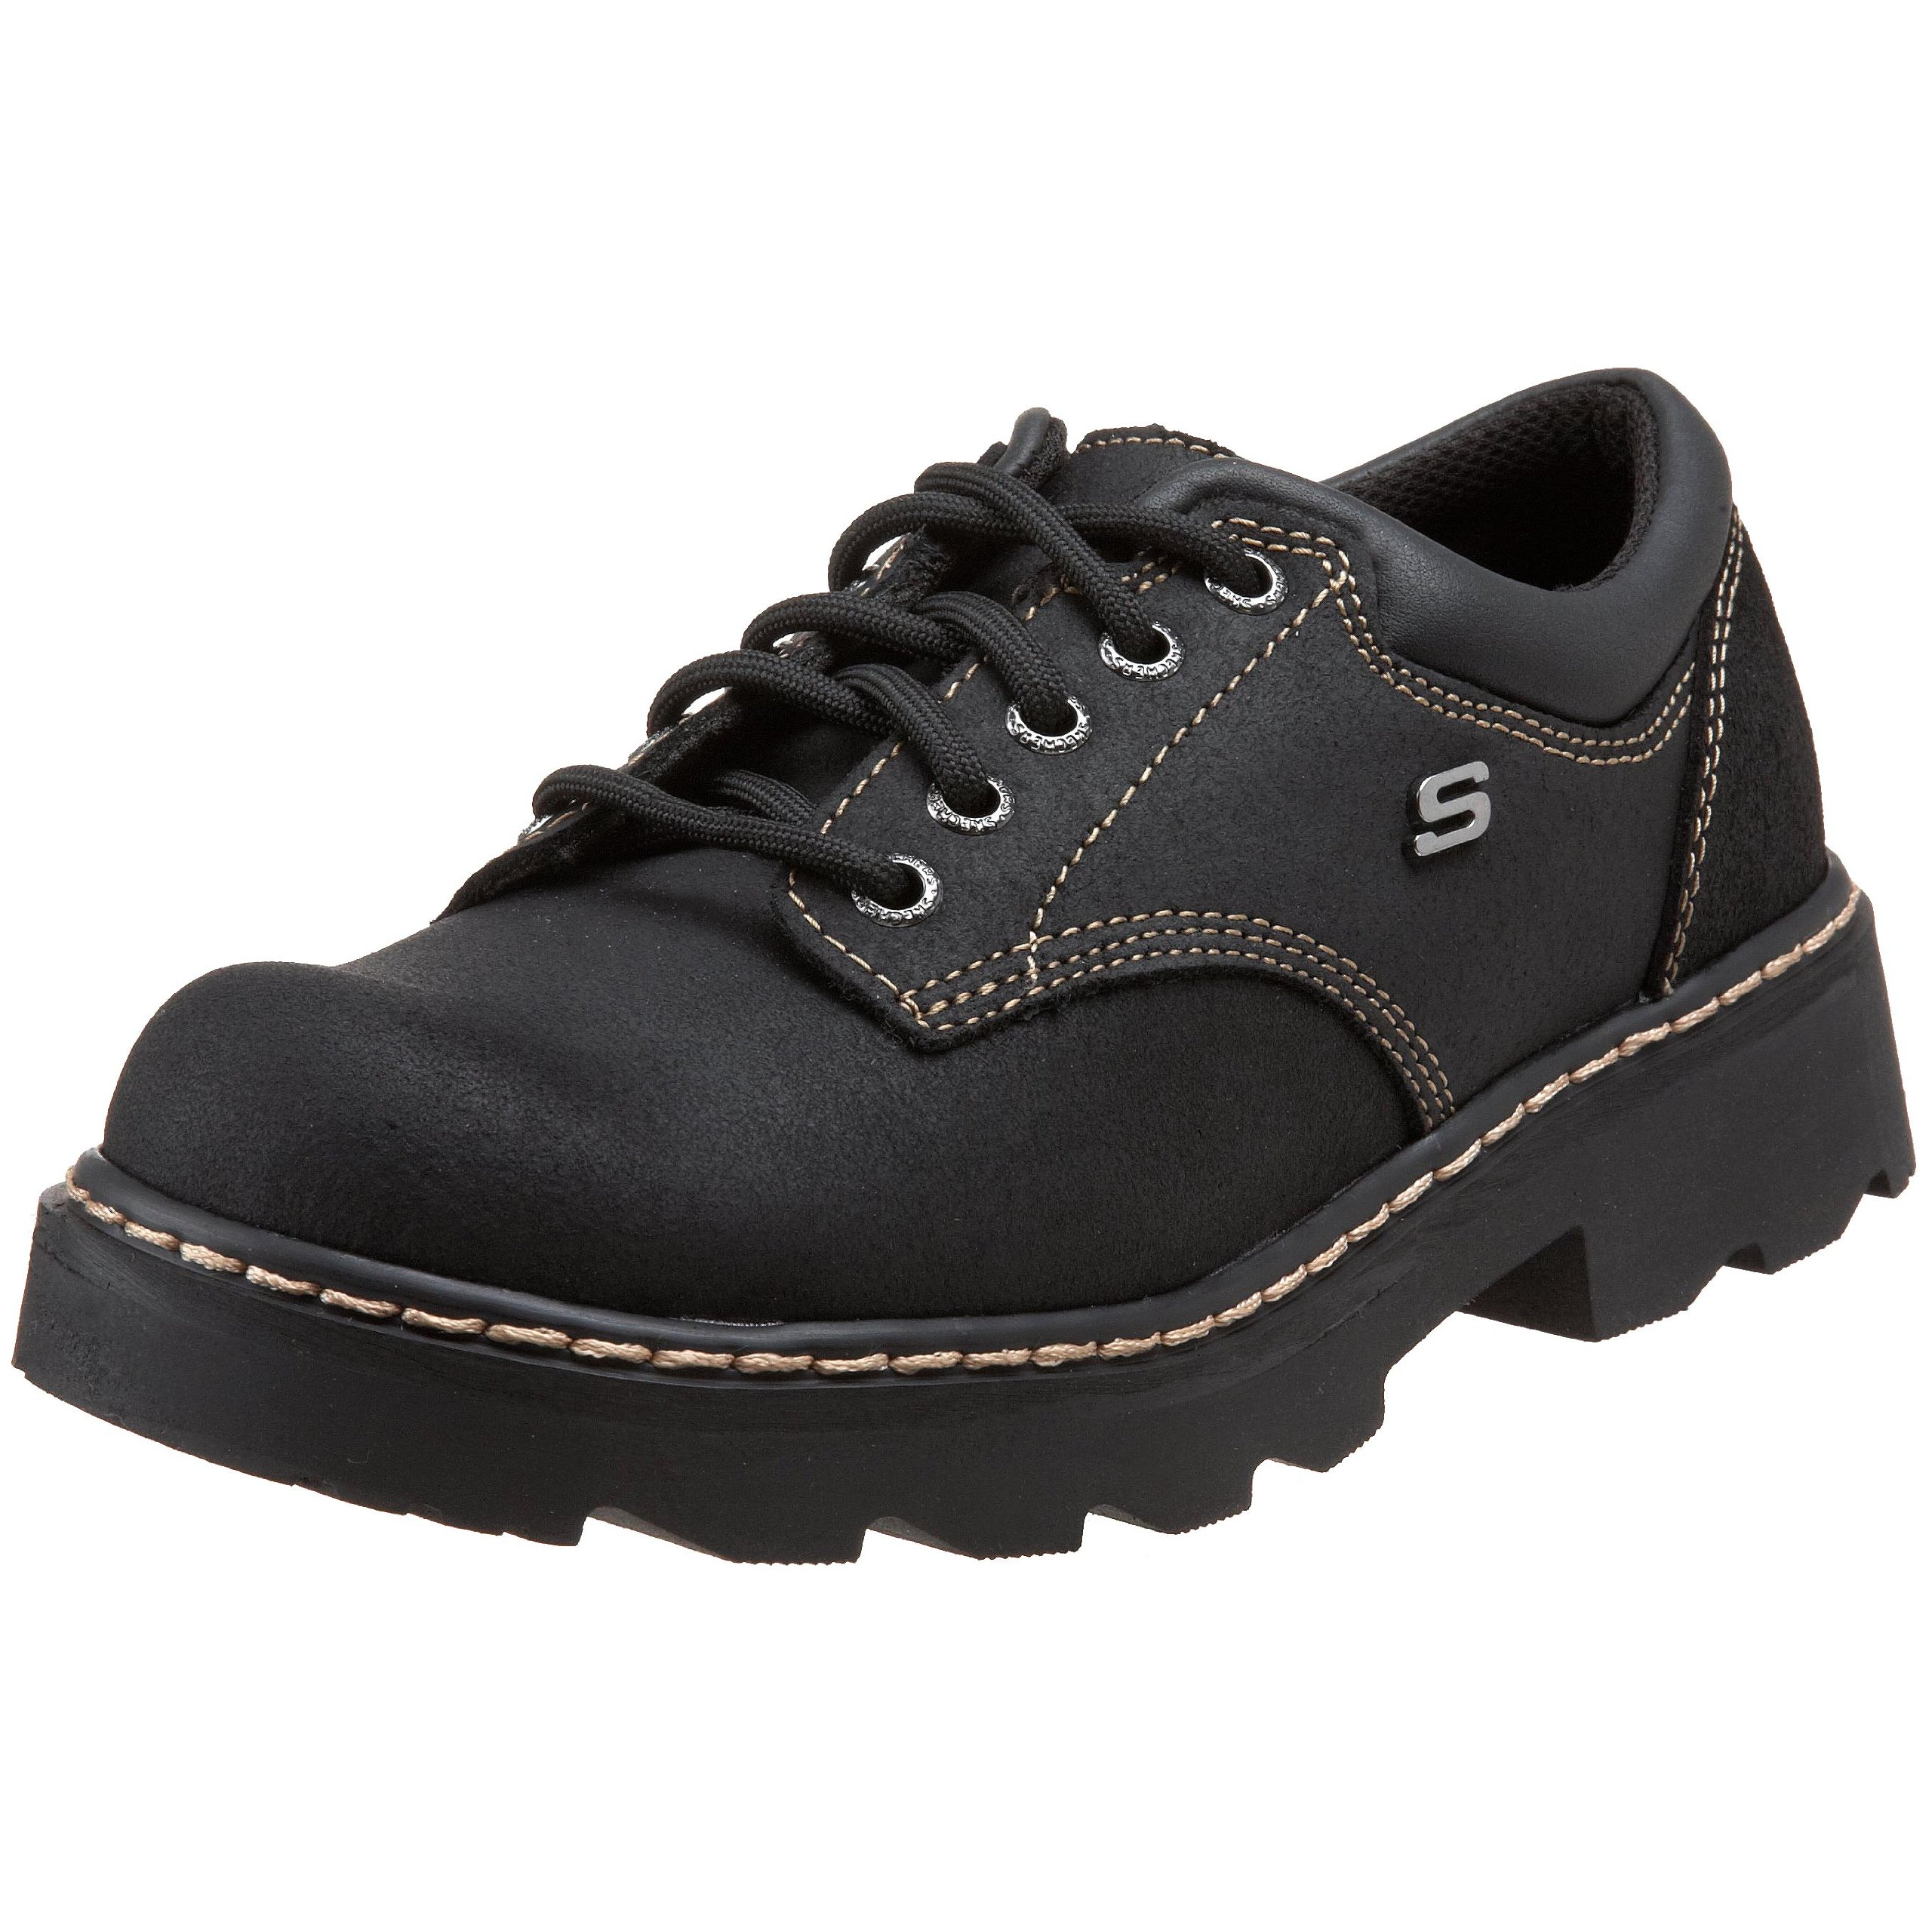 Skechers Women's Parties-Mate Oxford,Black Suede Leather,6 M US